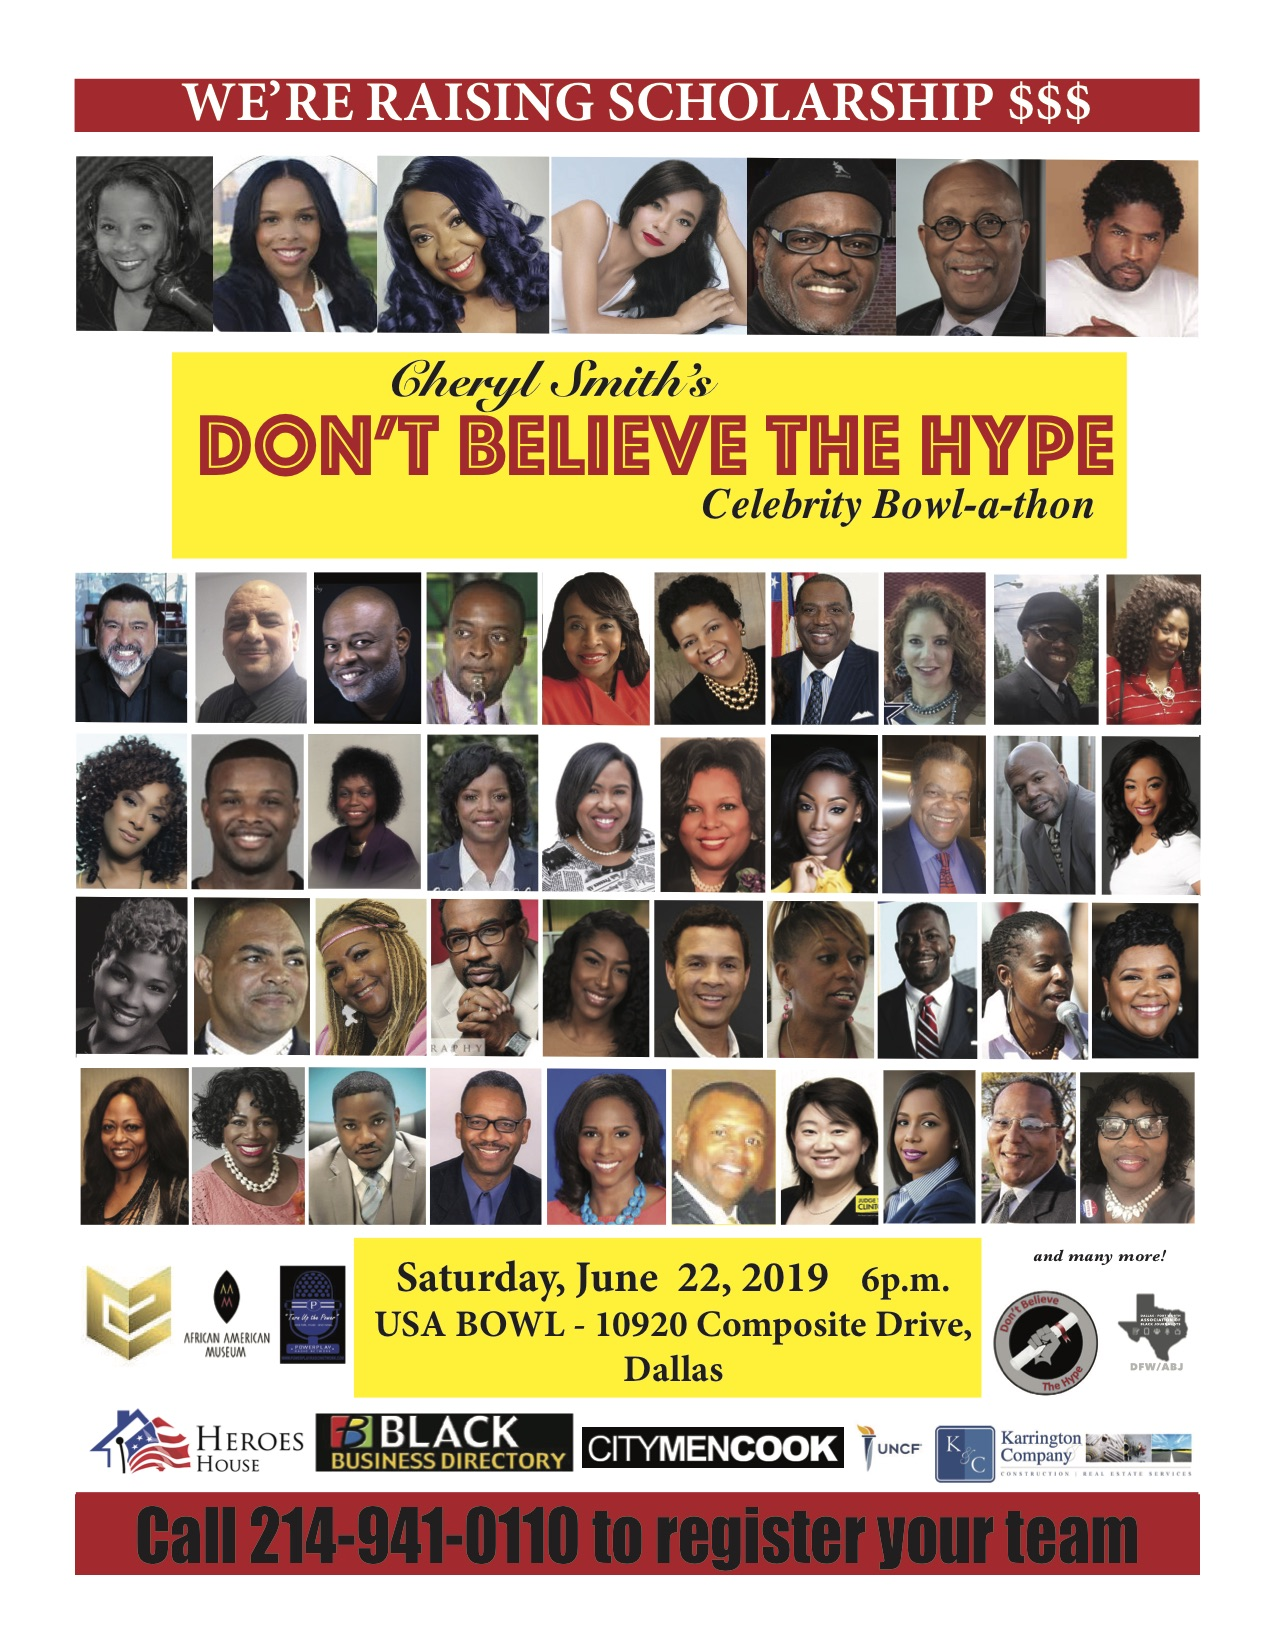 Don't Believe the Hype Celebrity Bowl-a-Thon: June 22, 2019